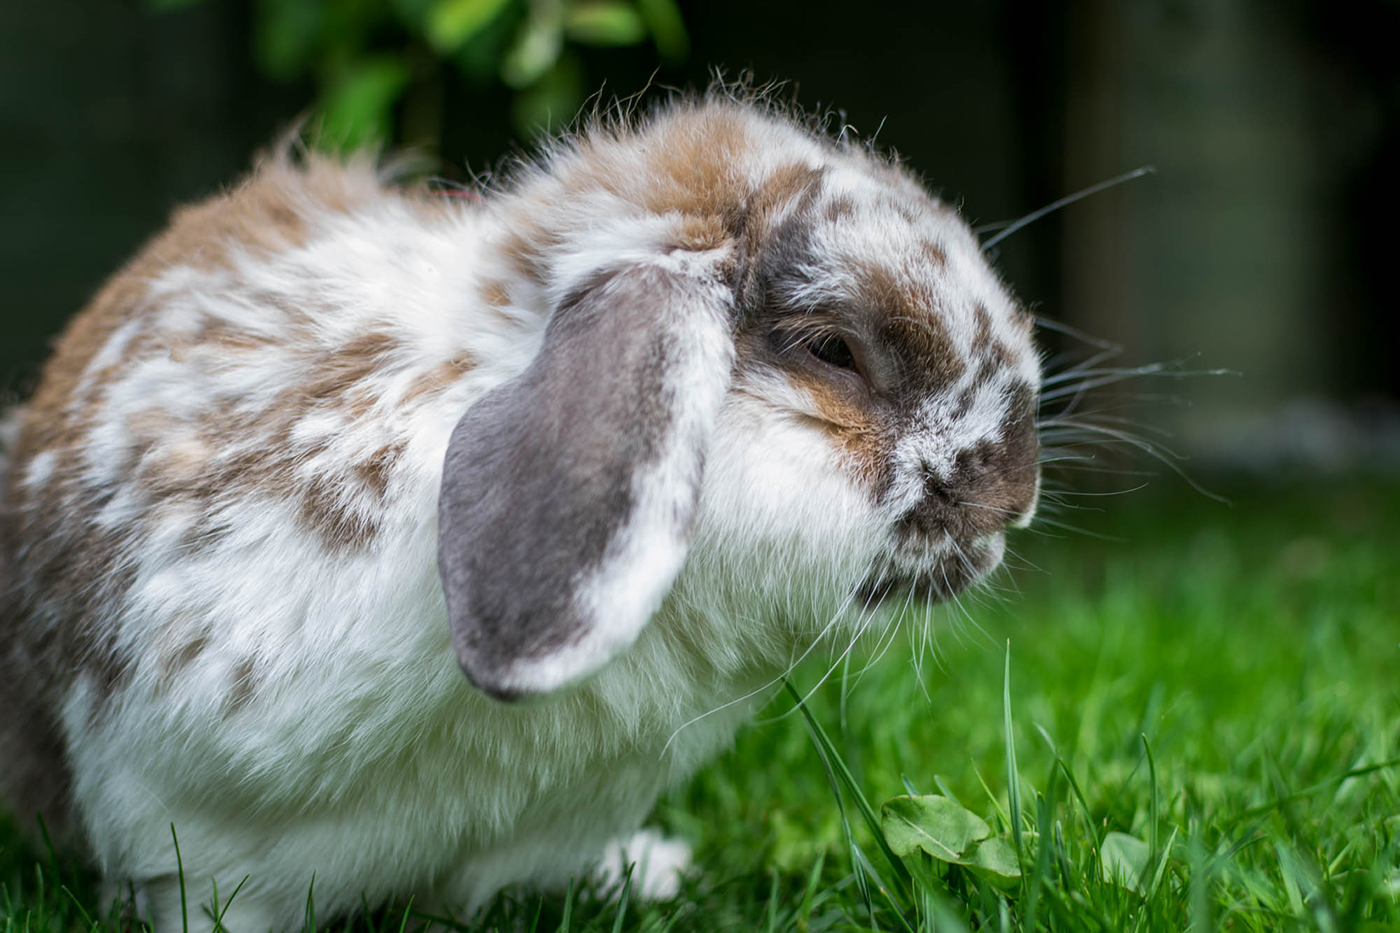 Rabbit_PhotoDSC_0585